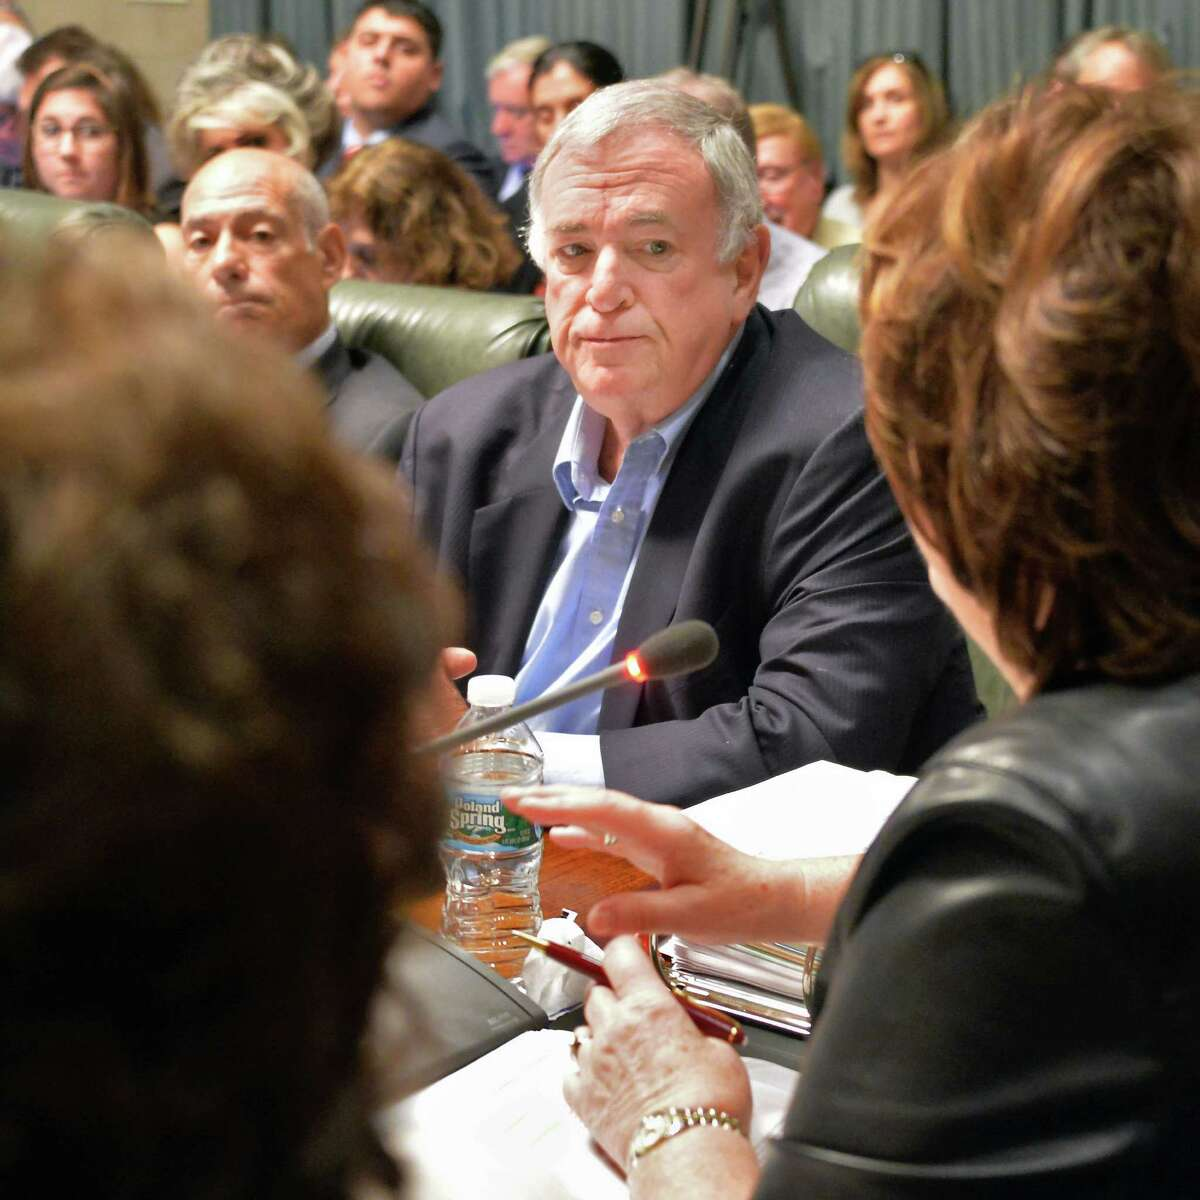 Regent Roger Tilles during a meeting of the NY State Board of Regents at the State Education Building Wednesday Sept. 16, 2015 in Albany, NY. (John Carl D'Annibale / Times Union)